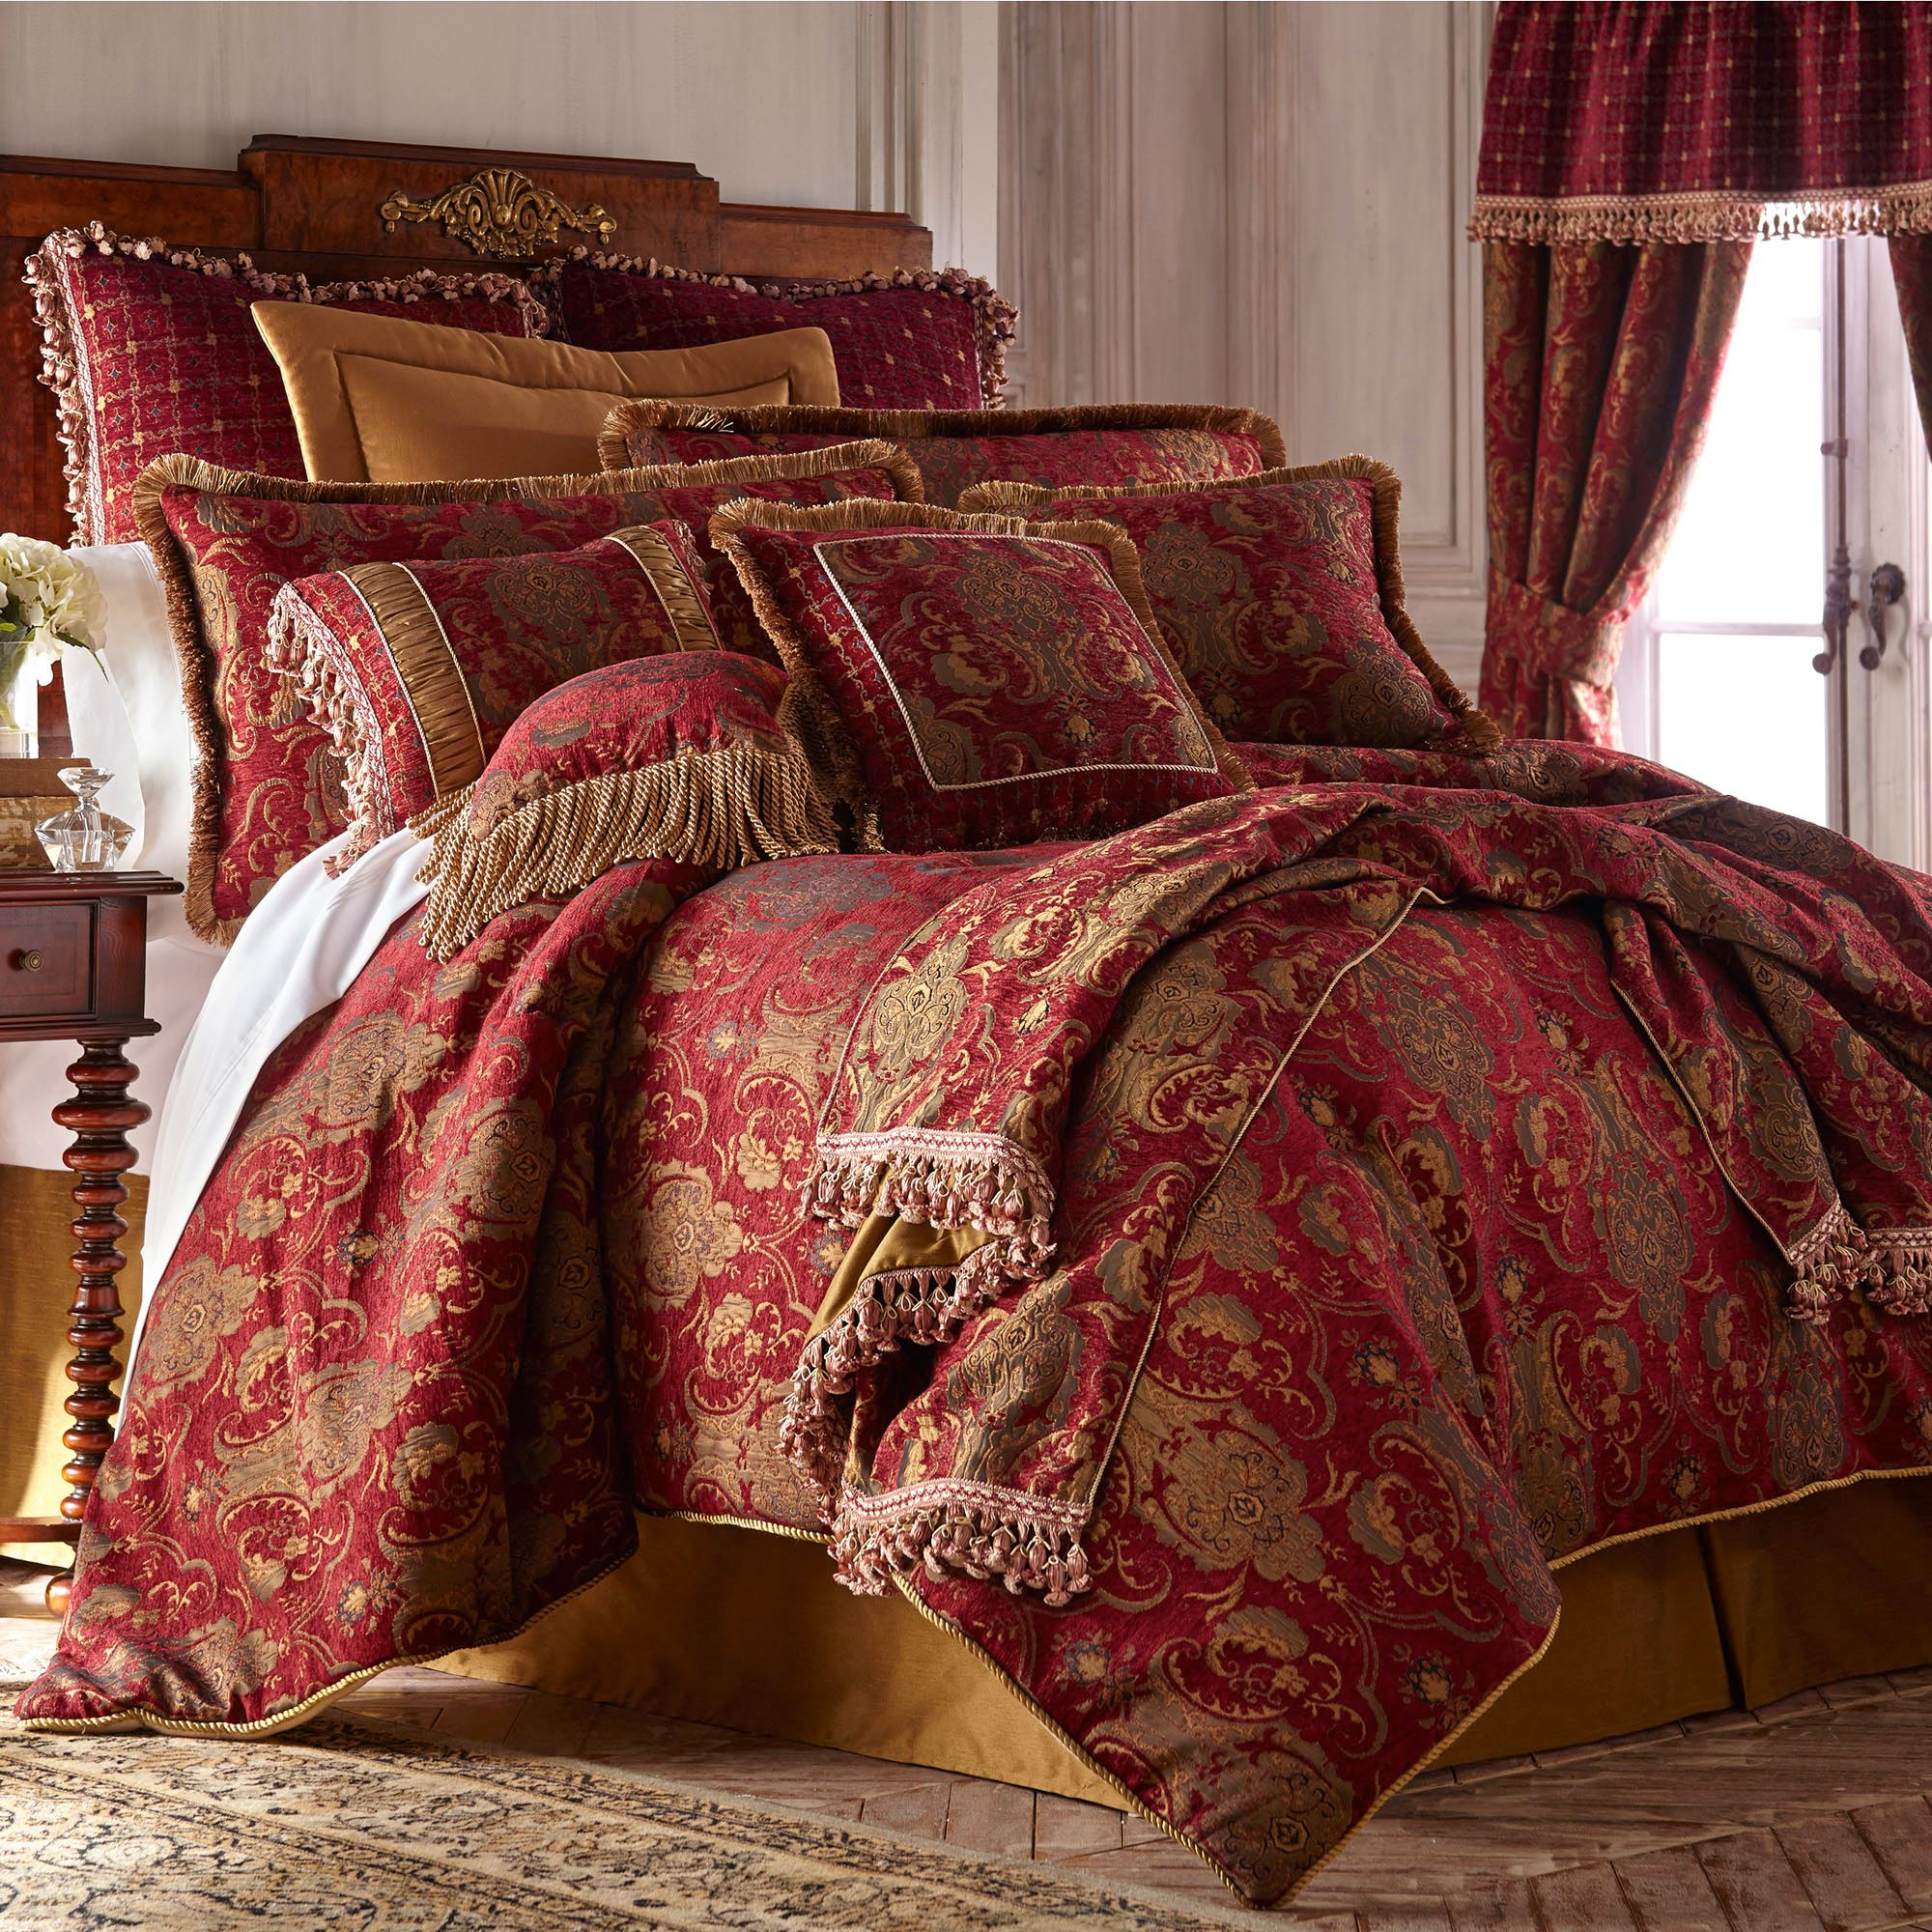 king brown set bedspreads comforters sets black blue bedroom comforter bed navy queen grey full and white bedding red